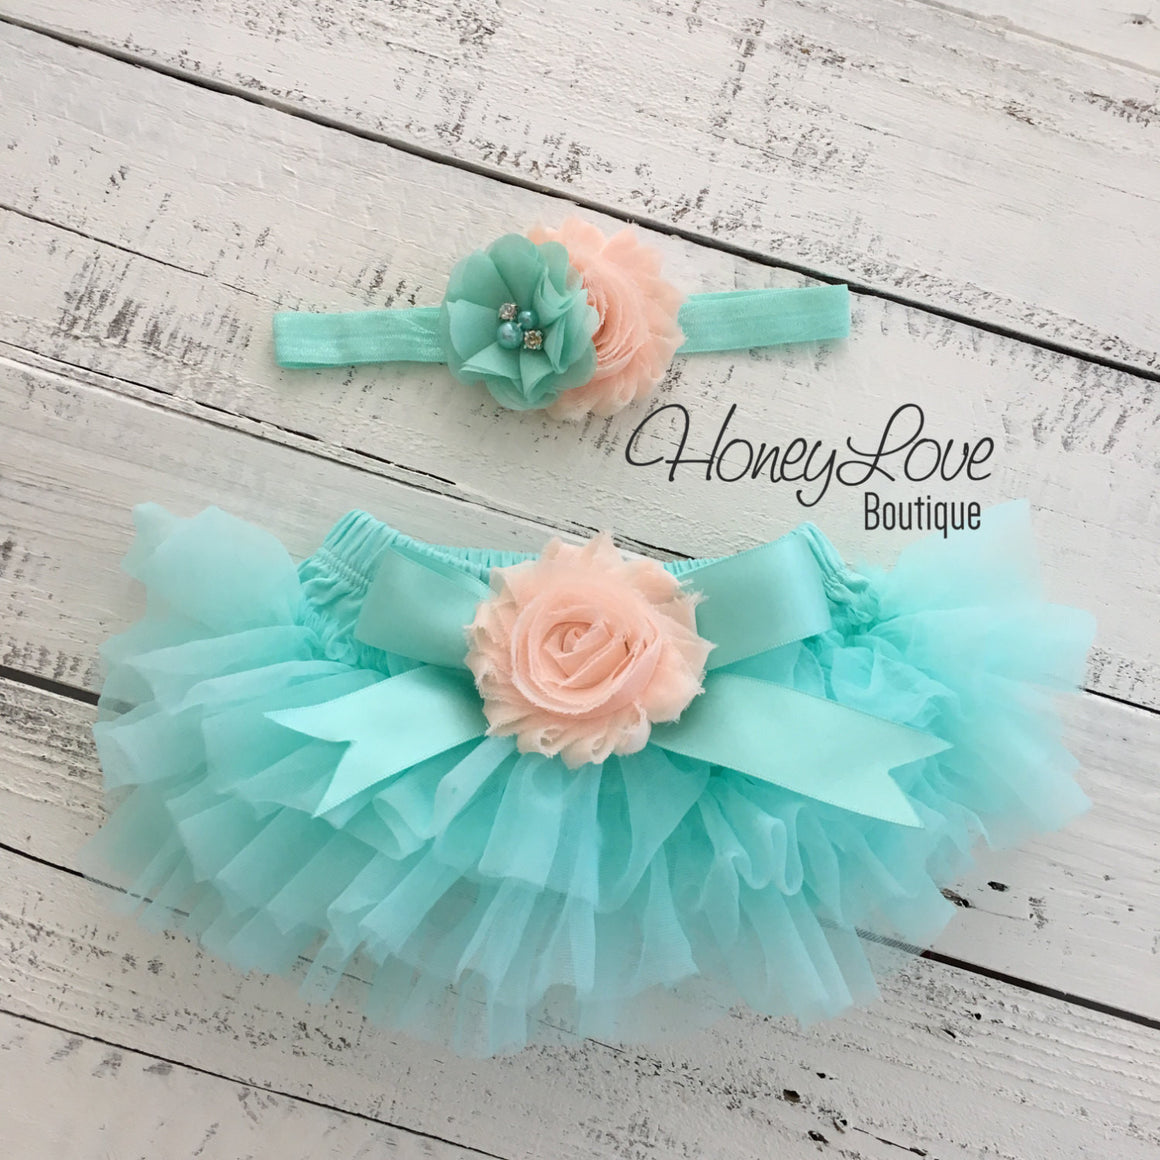 PERSONALIZED Mint/Aqua and Gold Glitter - Peach flower embellished tutu skirt bloomers - HoneyLoveBoutique